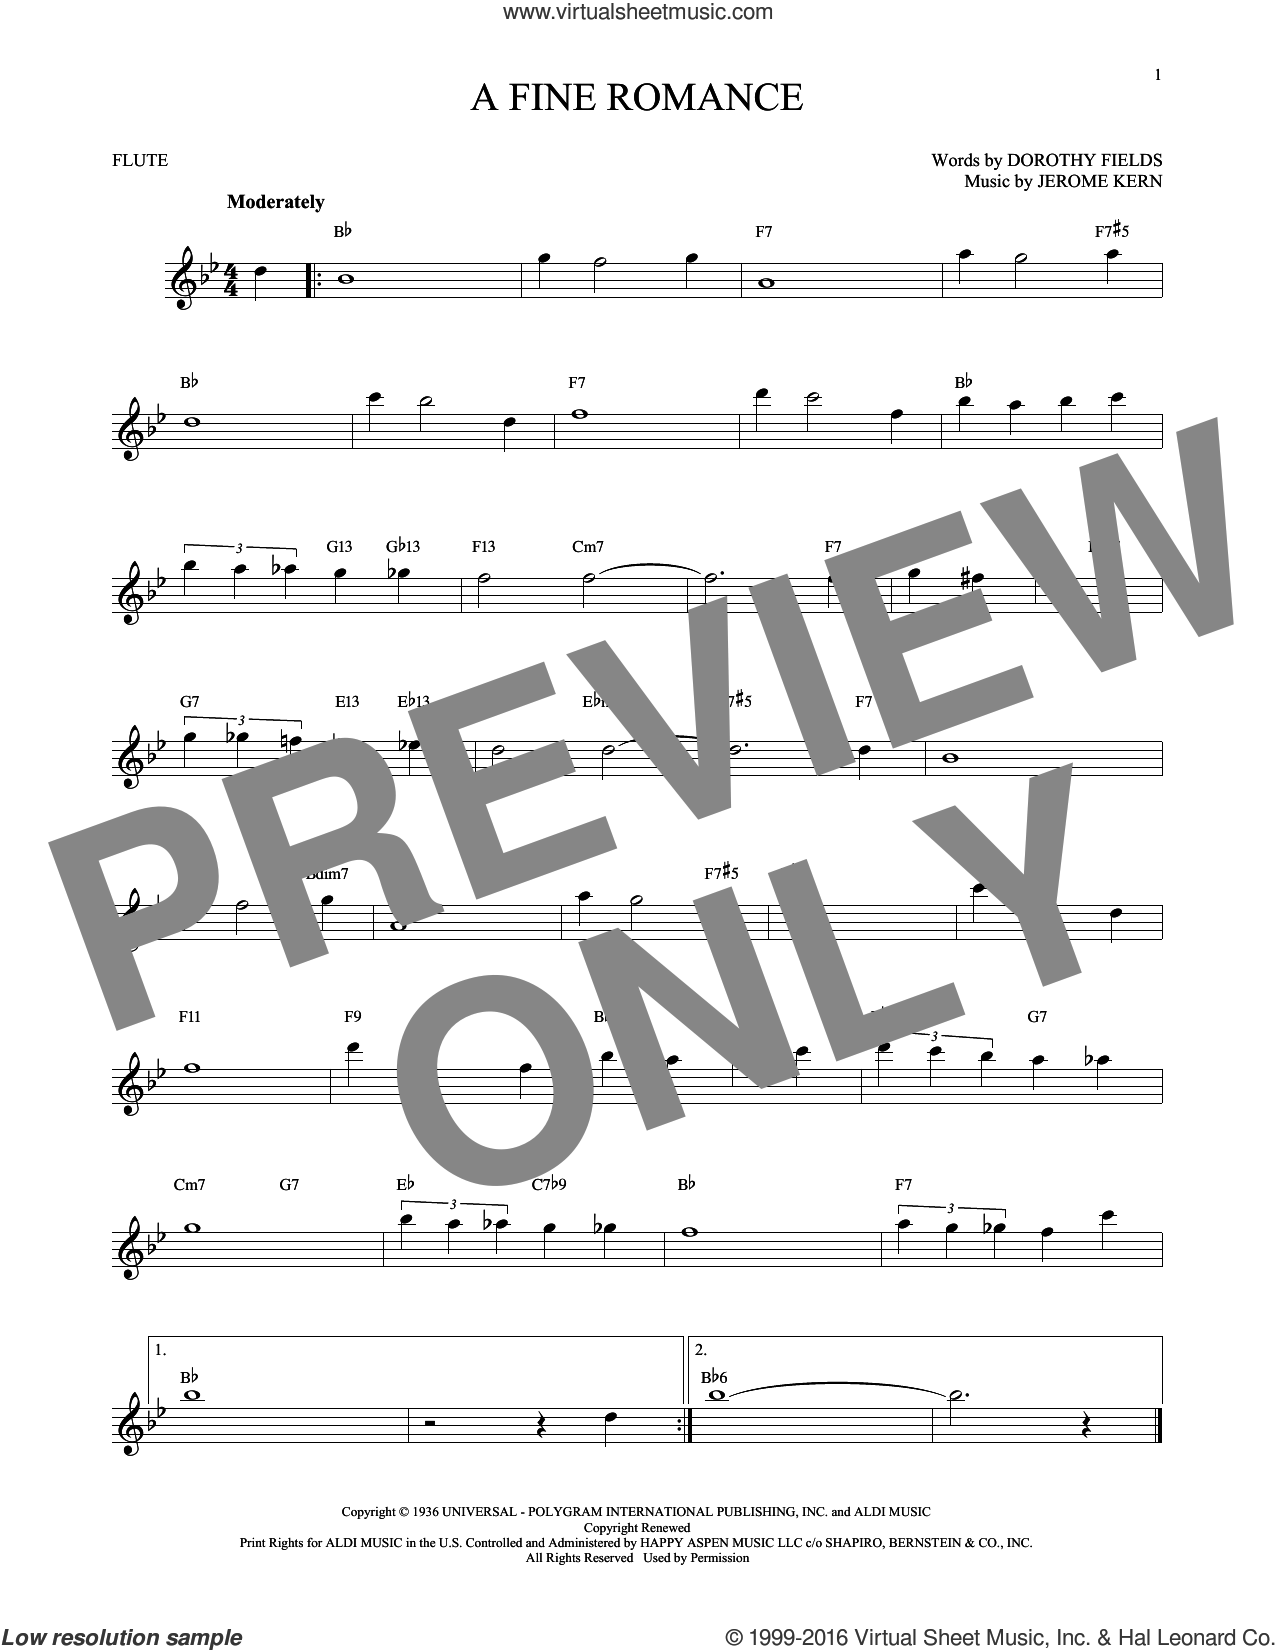 A Fine Romance sheet music for flute solo by Jerome Kern and Dorothy Fields, intermediate